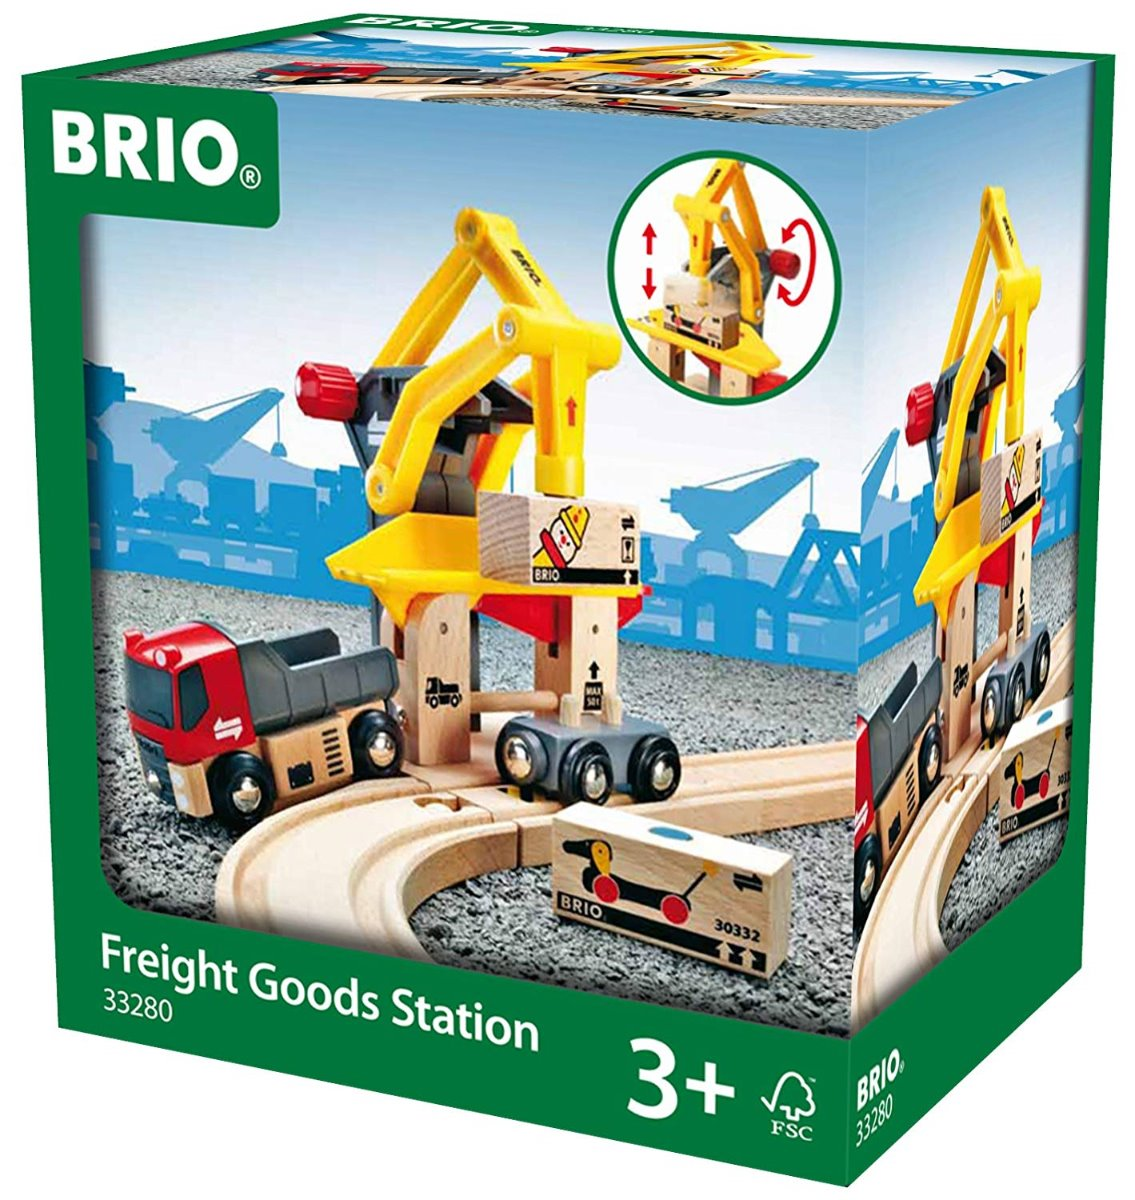 Brio 33280 - Freight Goods Station in box at Little Sprout